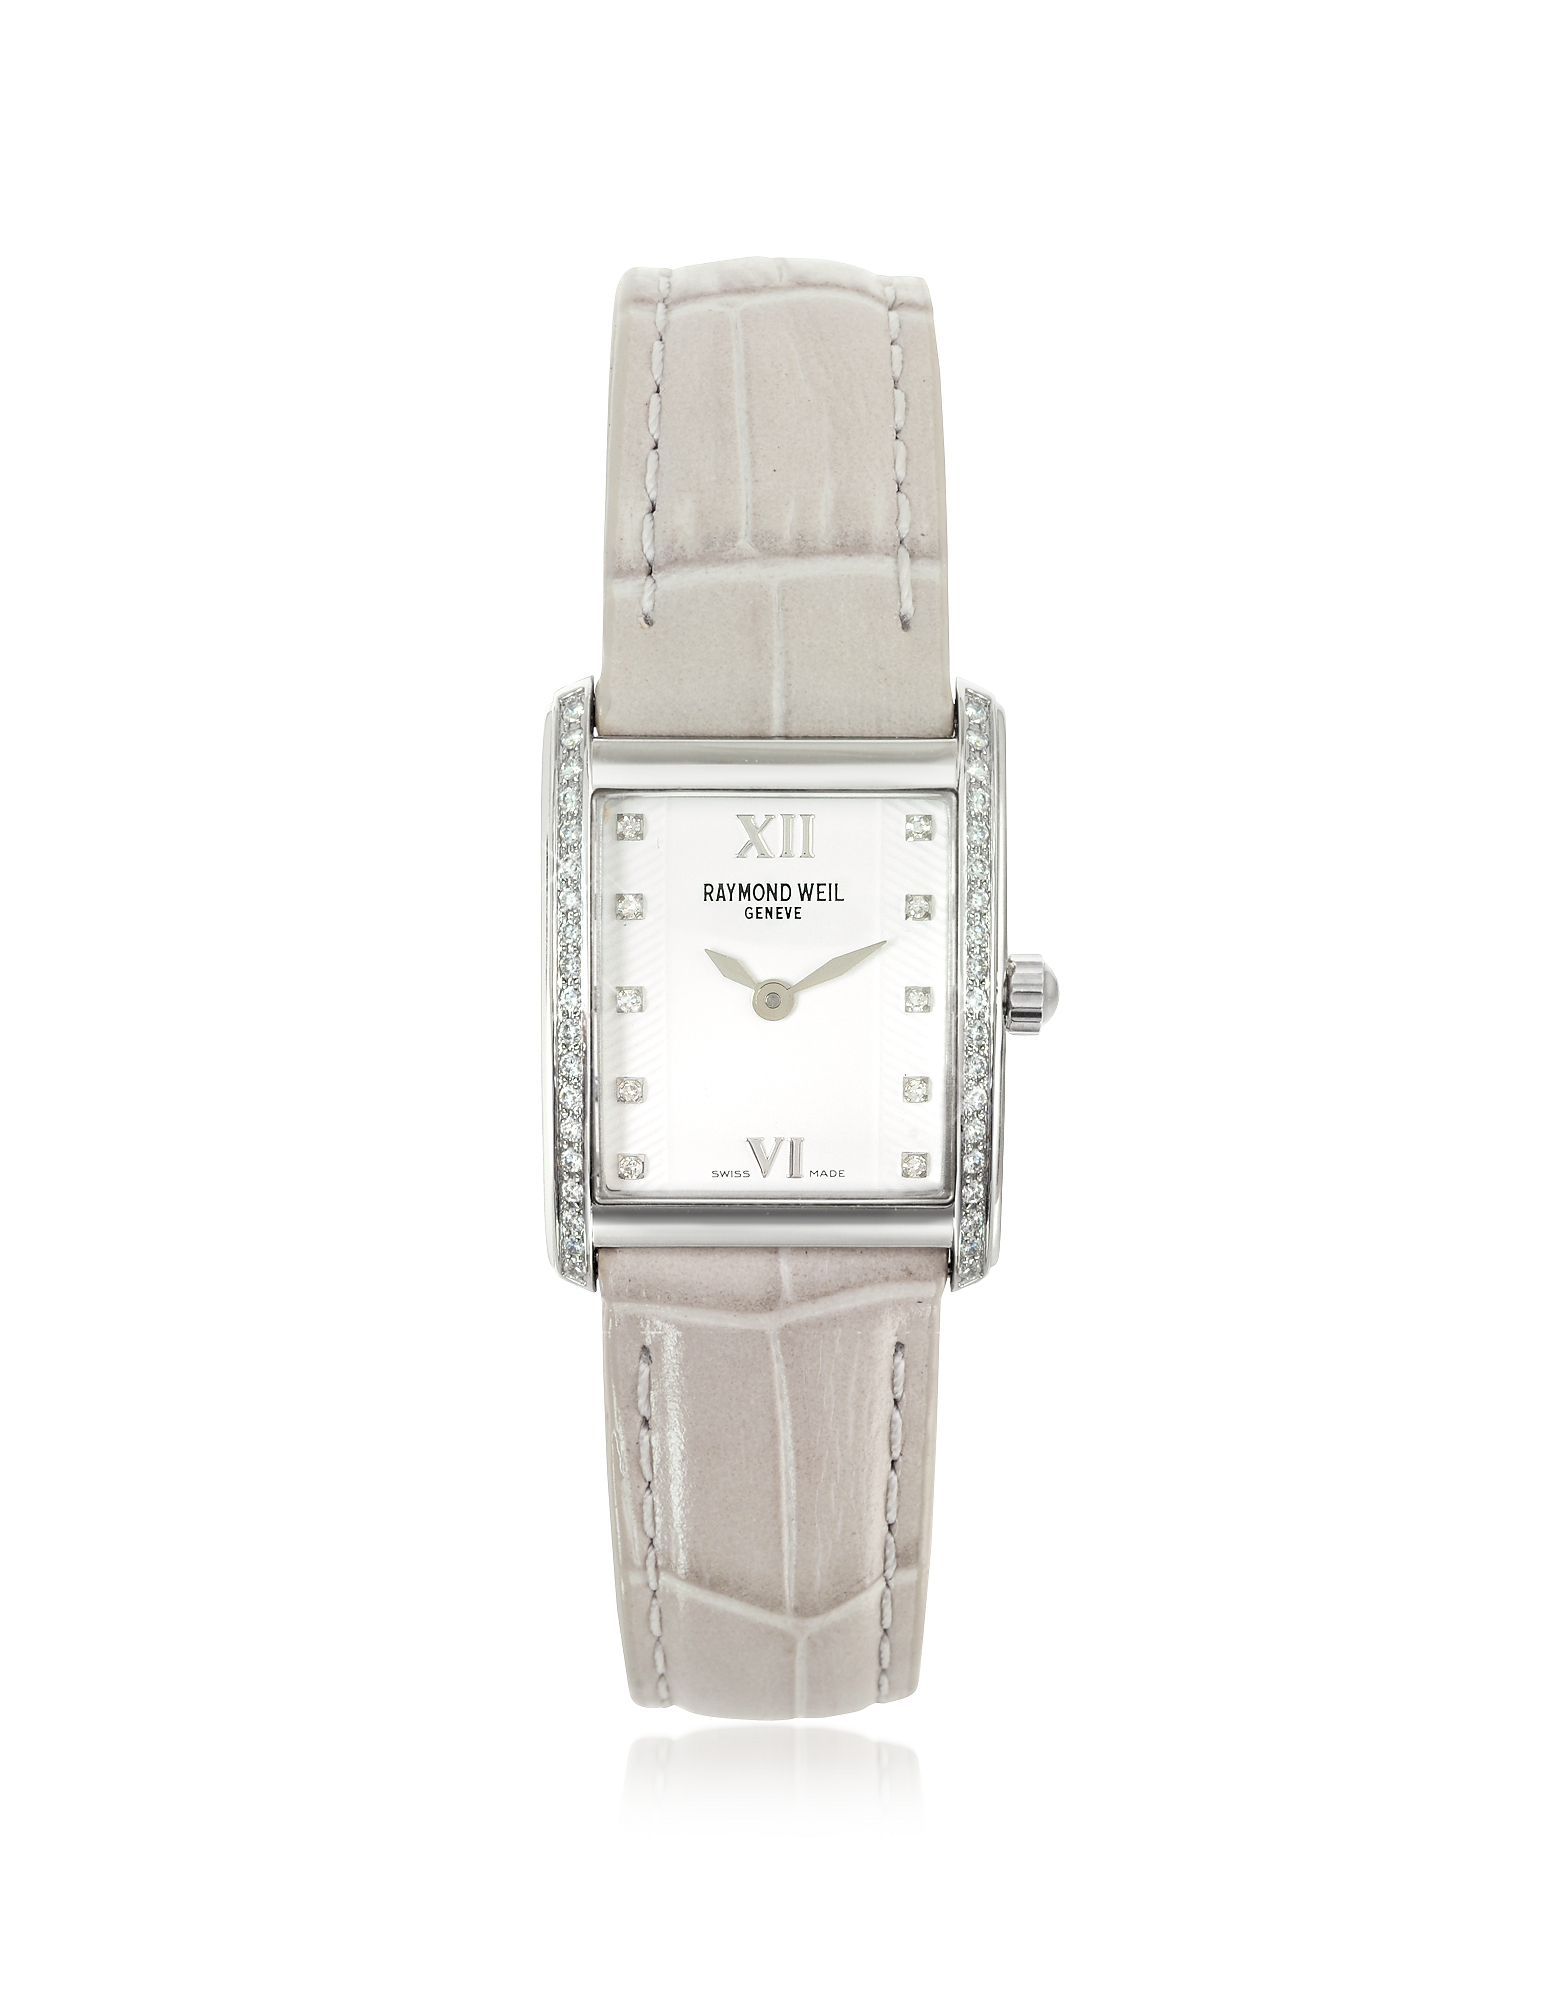 Raymond Weil Women's Watches, Don Giovanni - Diamond Frame & Satin Light Blue Band Dress Watch